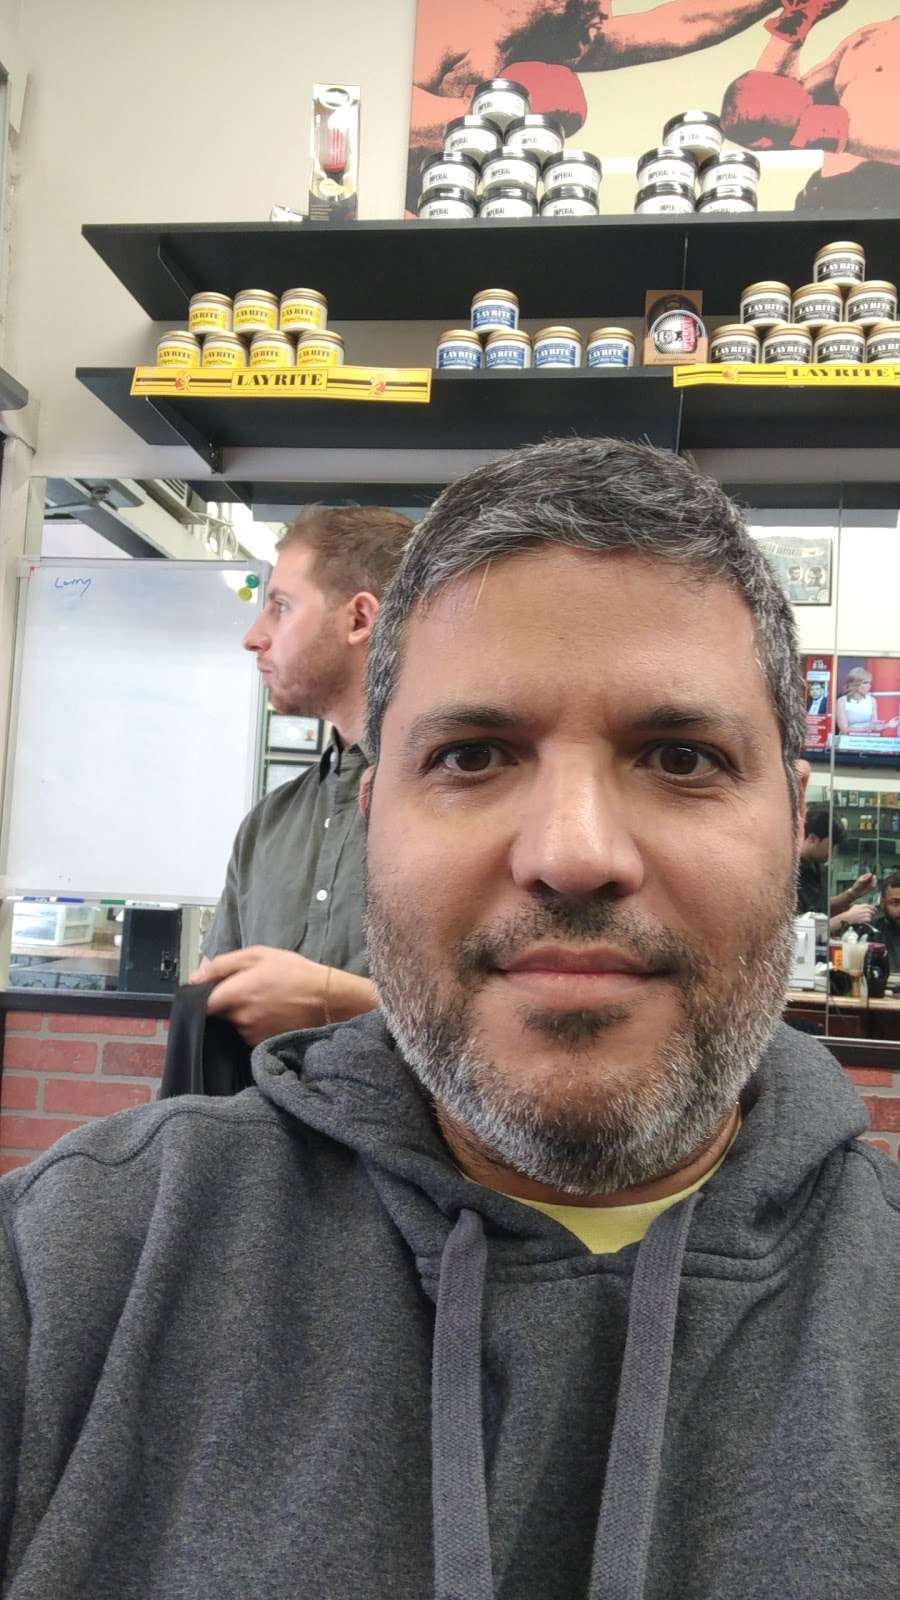 Rays Barber Shop - hair care  | Photo 5 of 7 | Address: 634 W 207th St, New York, NY 10034, USA | Phone: (212) 569-4090